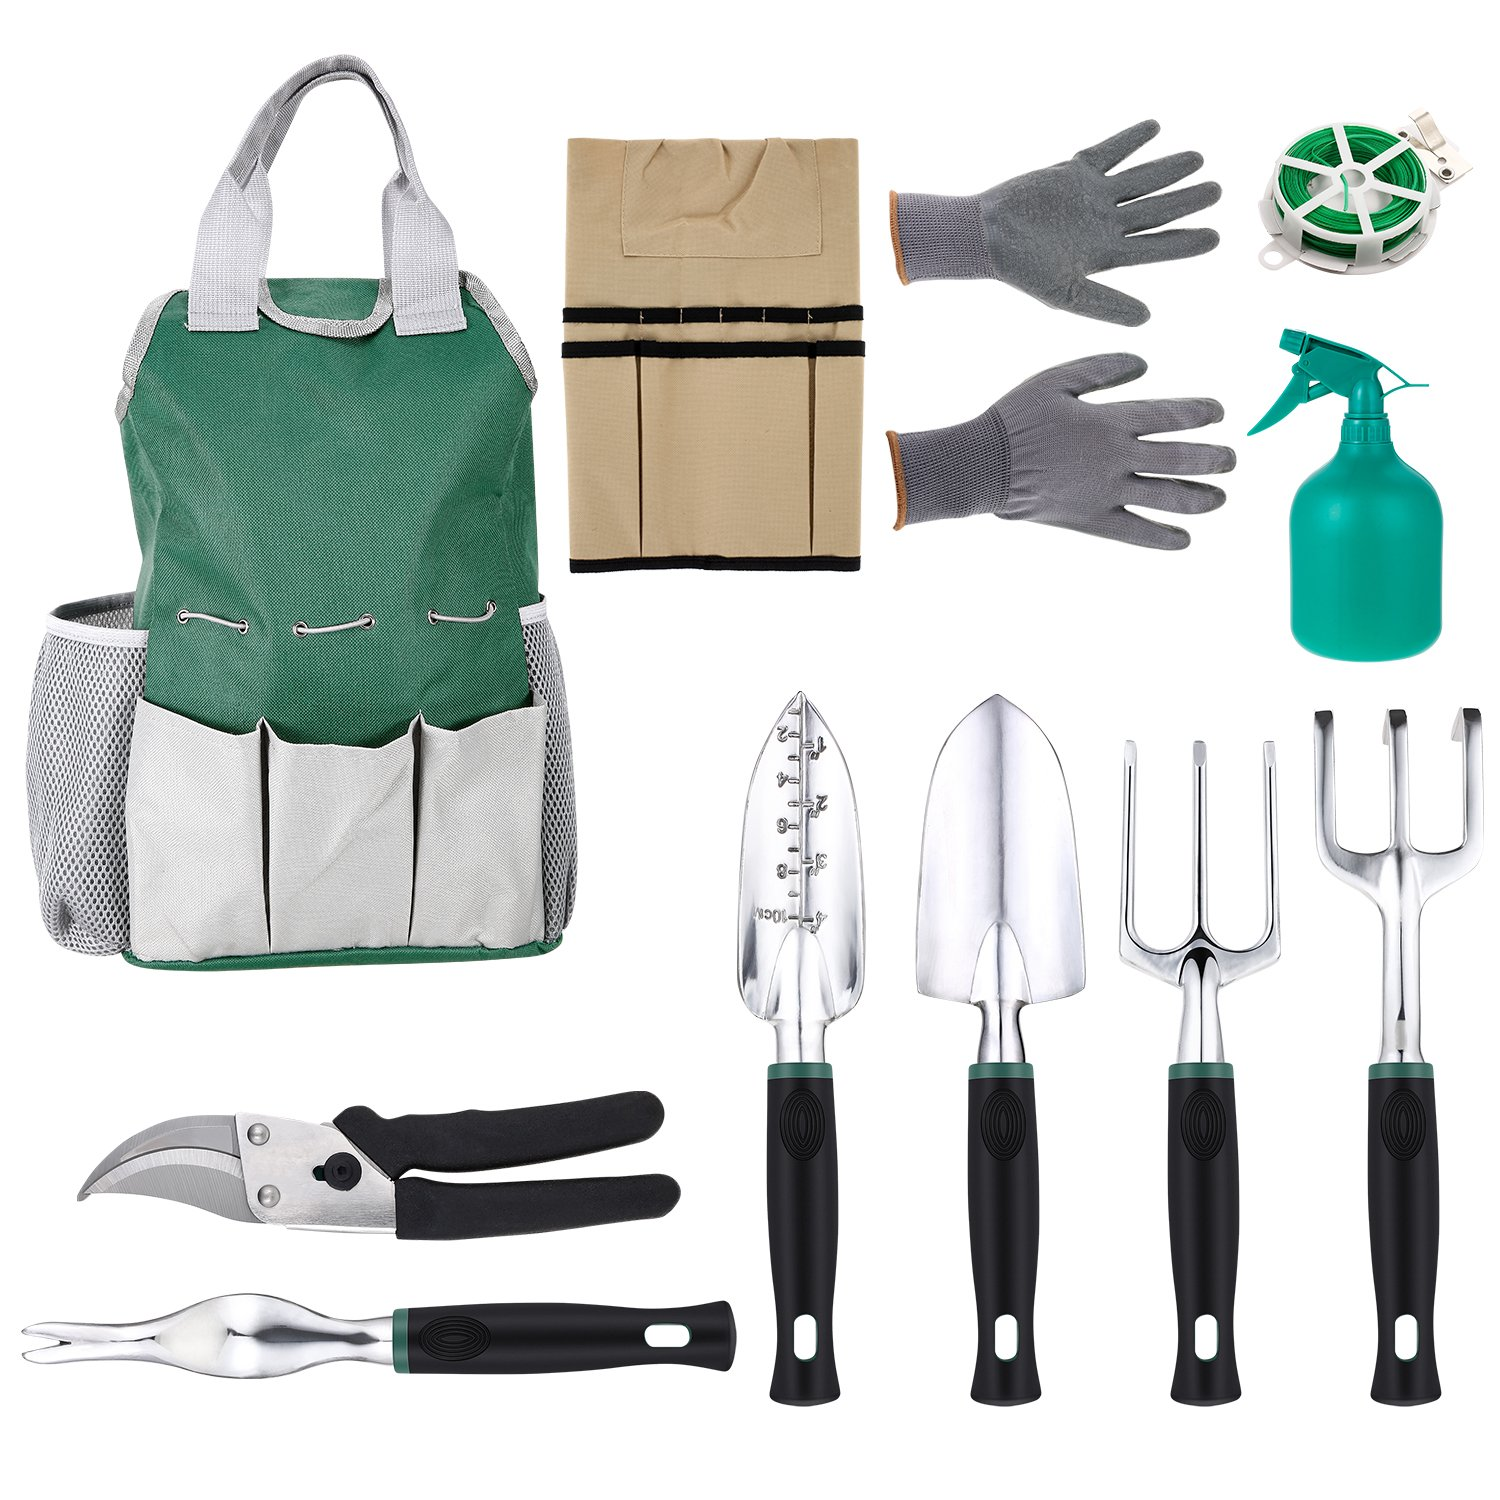 Homdox 11 Piece Gardening Tool Set Gardening Tools with Tool Bag Apron 6 Gardening Tools Anti-cutting Gloves and Bind Line Green